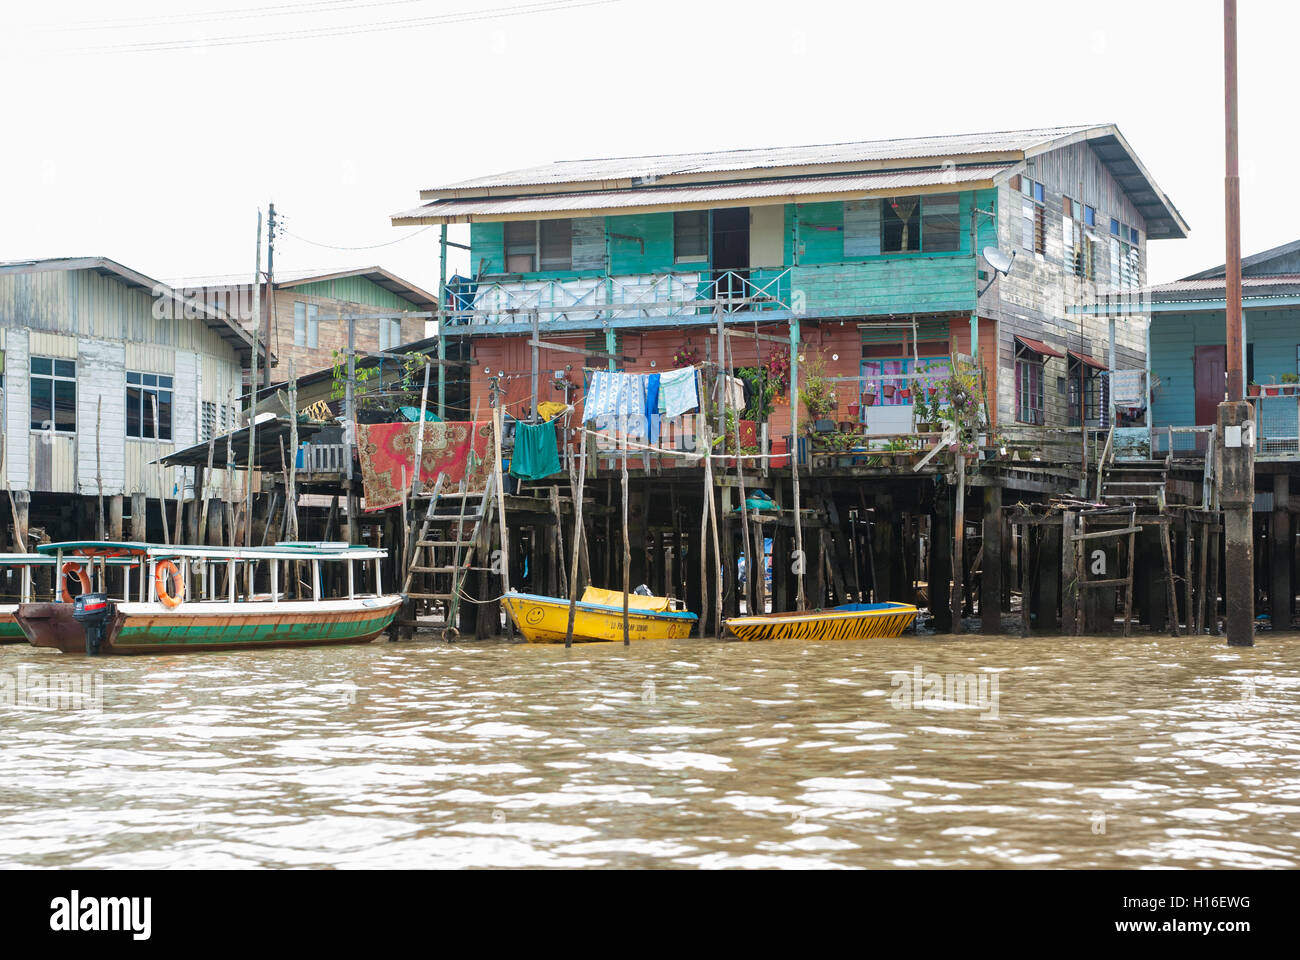 Houses on stilts in water village, Kampong Ayer near Bandar Seri Begawan, Brunei - Stock Image